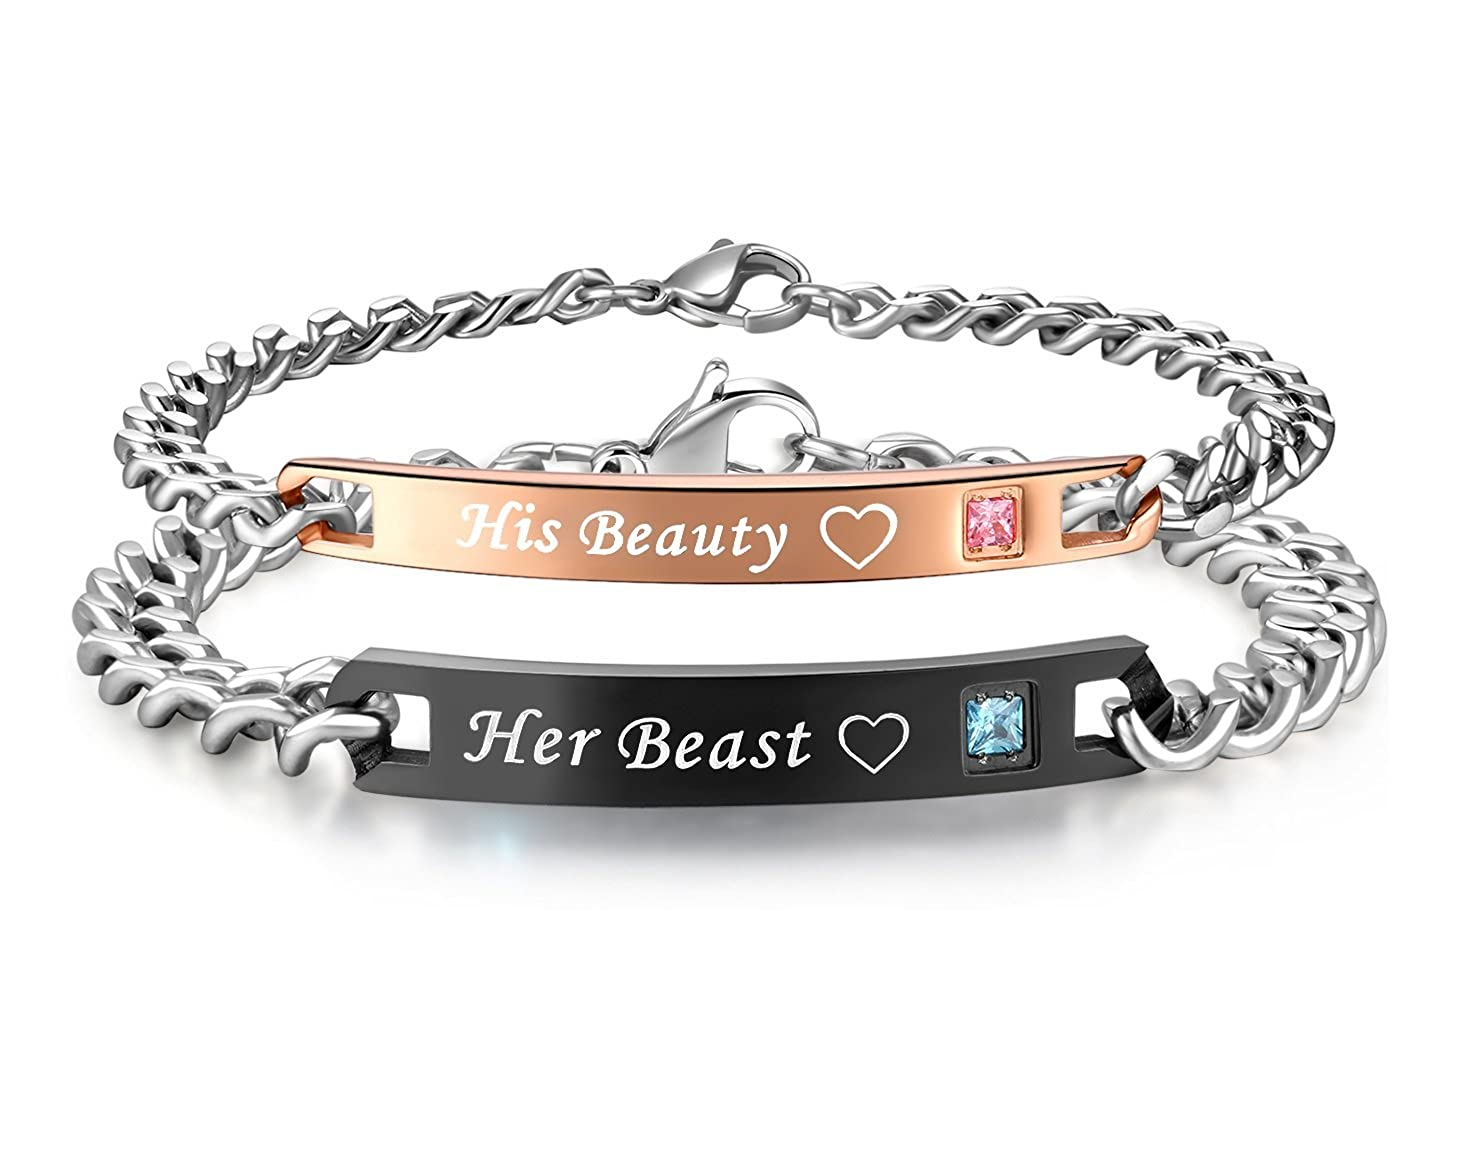 45e1ccf716 Amazon.com: His or Hers Matching Set His Beauty Her Beast Titanium  Stainless Steel Couple Bracelet in a Gift Box (A Pair): Jewelry